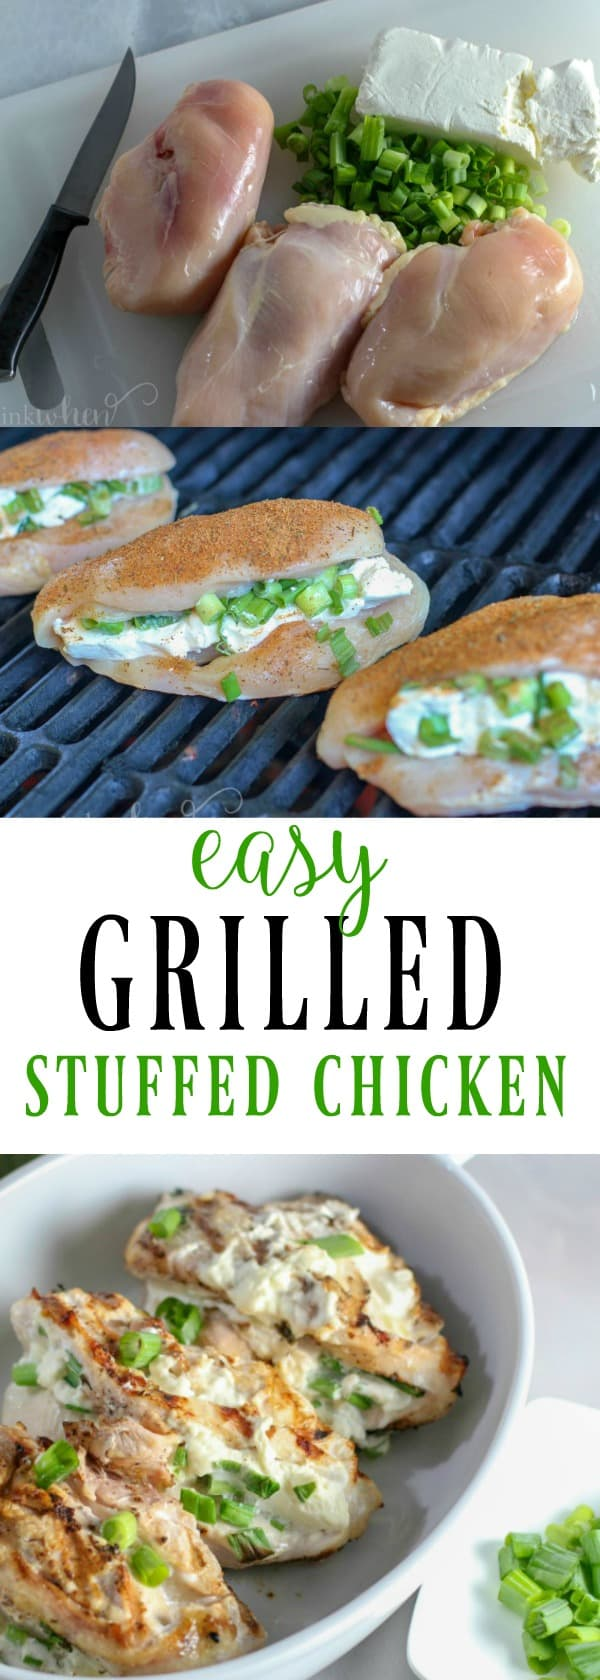 This recipe for a stuffed grilled chicken breast is mouthwateringly delicious. It takes grilled chicken to another level. #grilledchicken #stuffedchicken